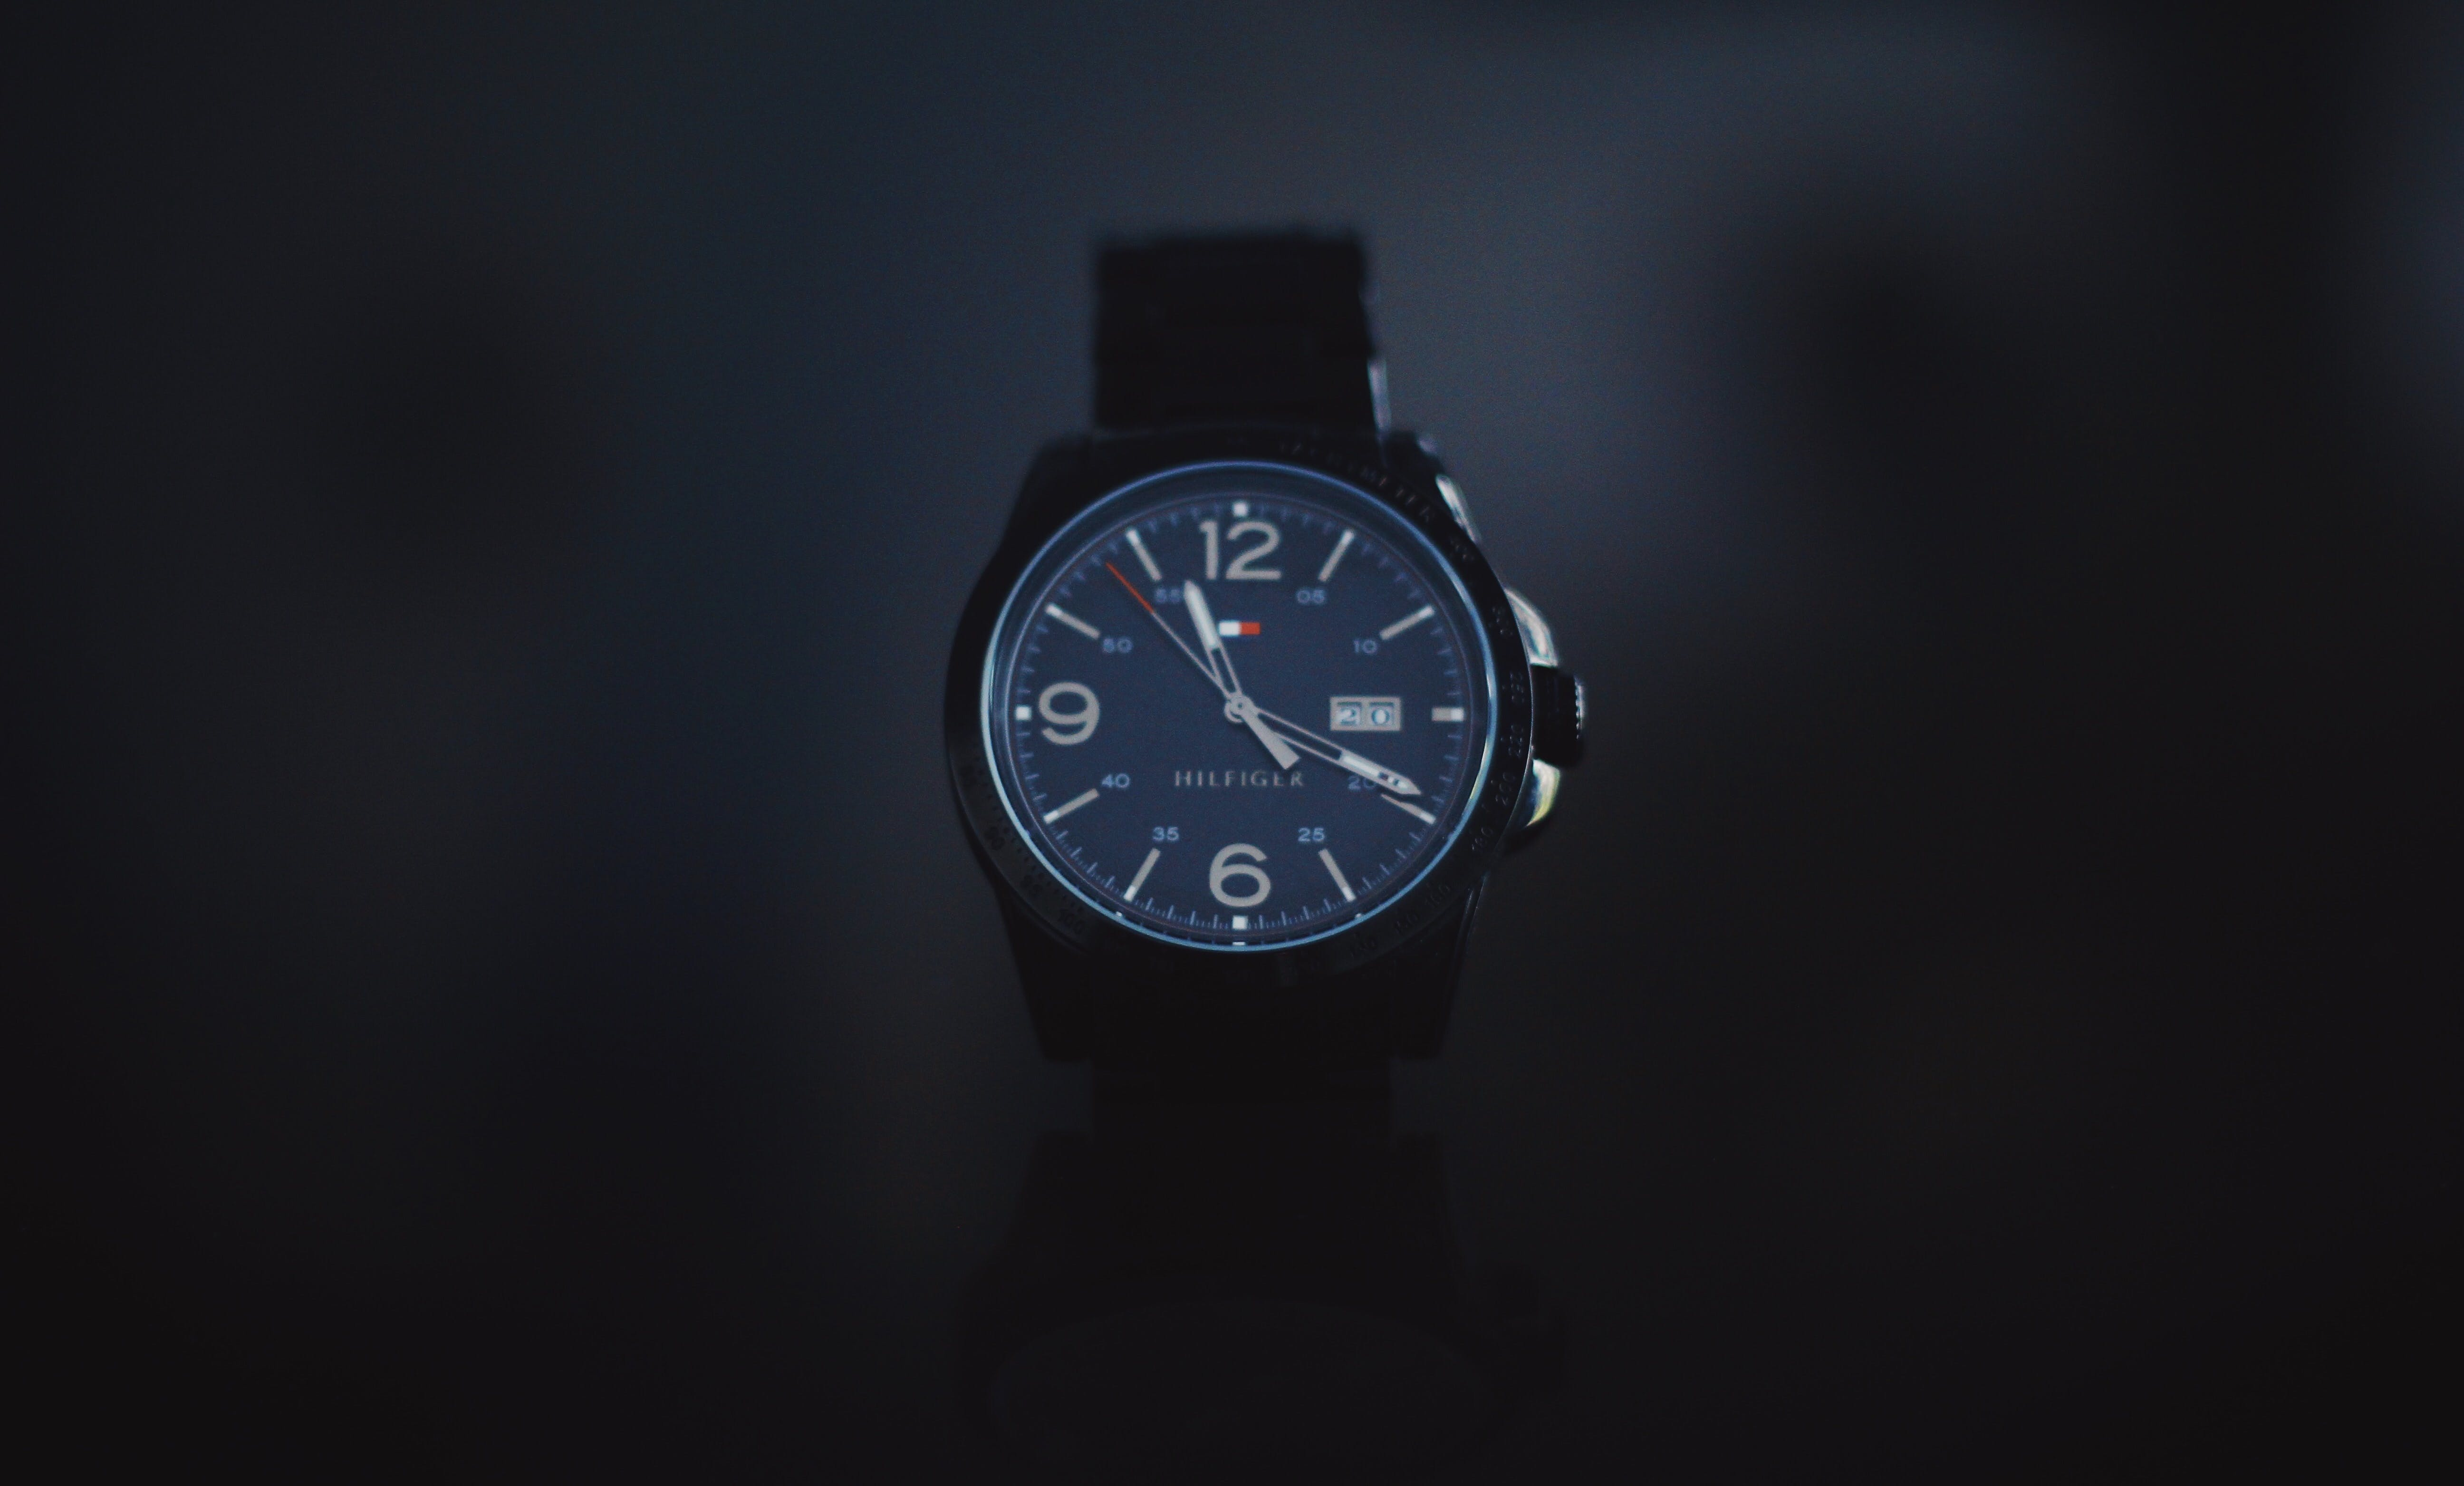 Free stock photo of Analog watch, antique watch, black wallpaper, color blending